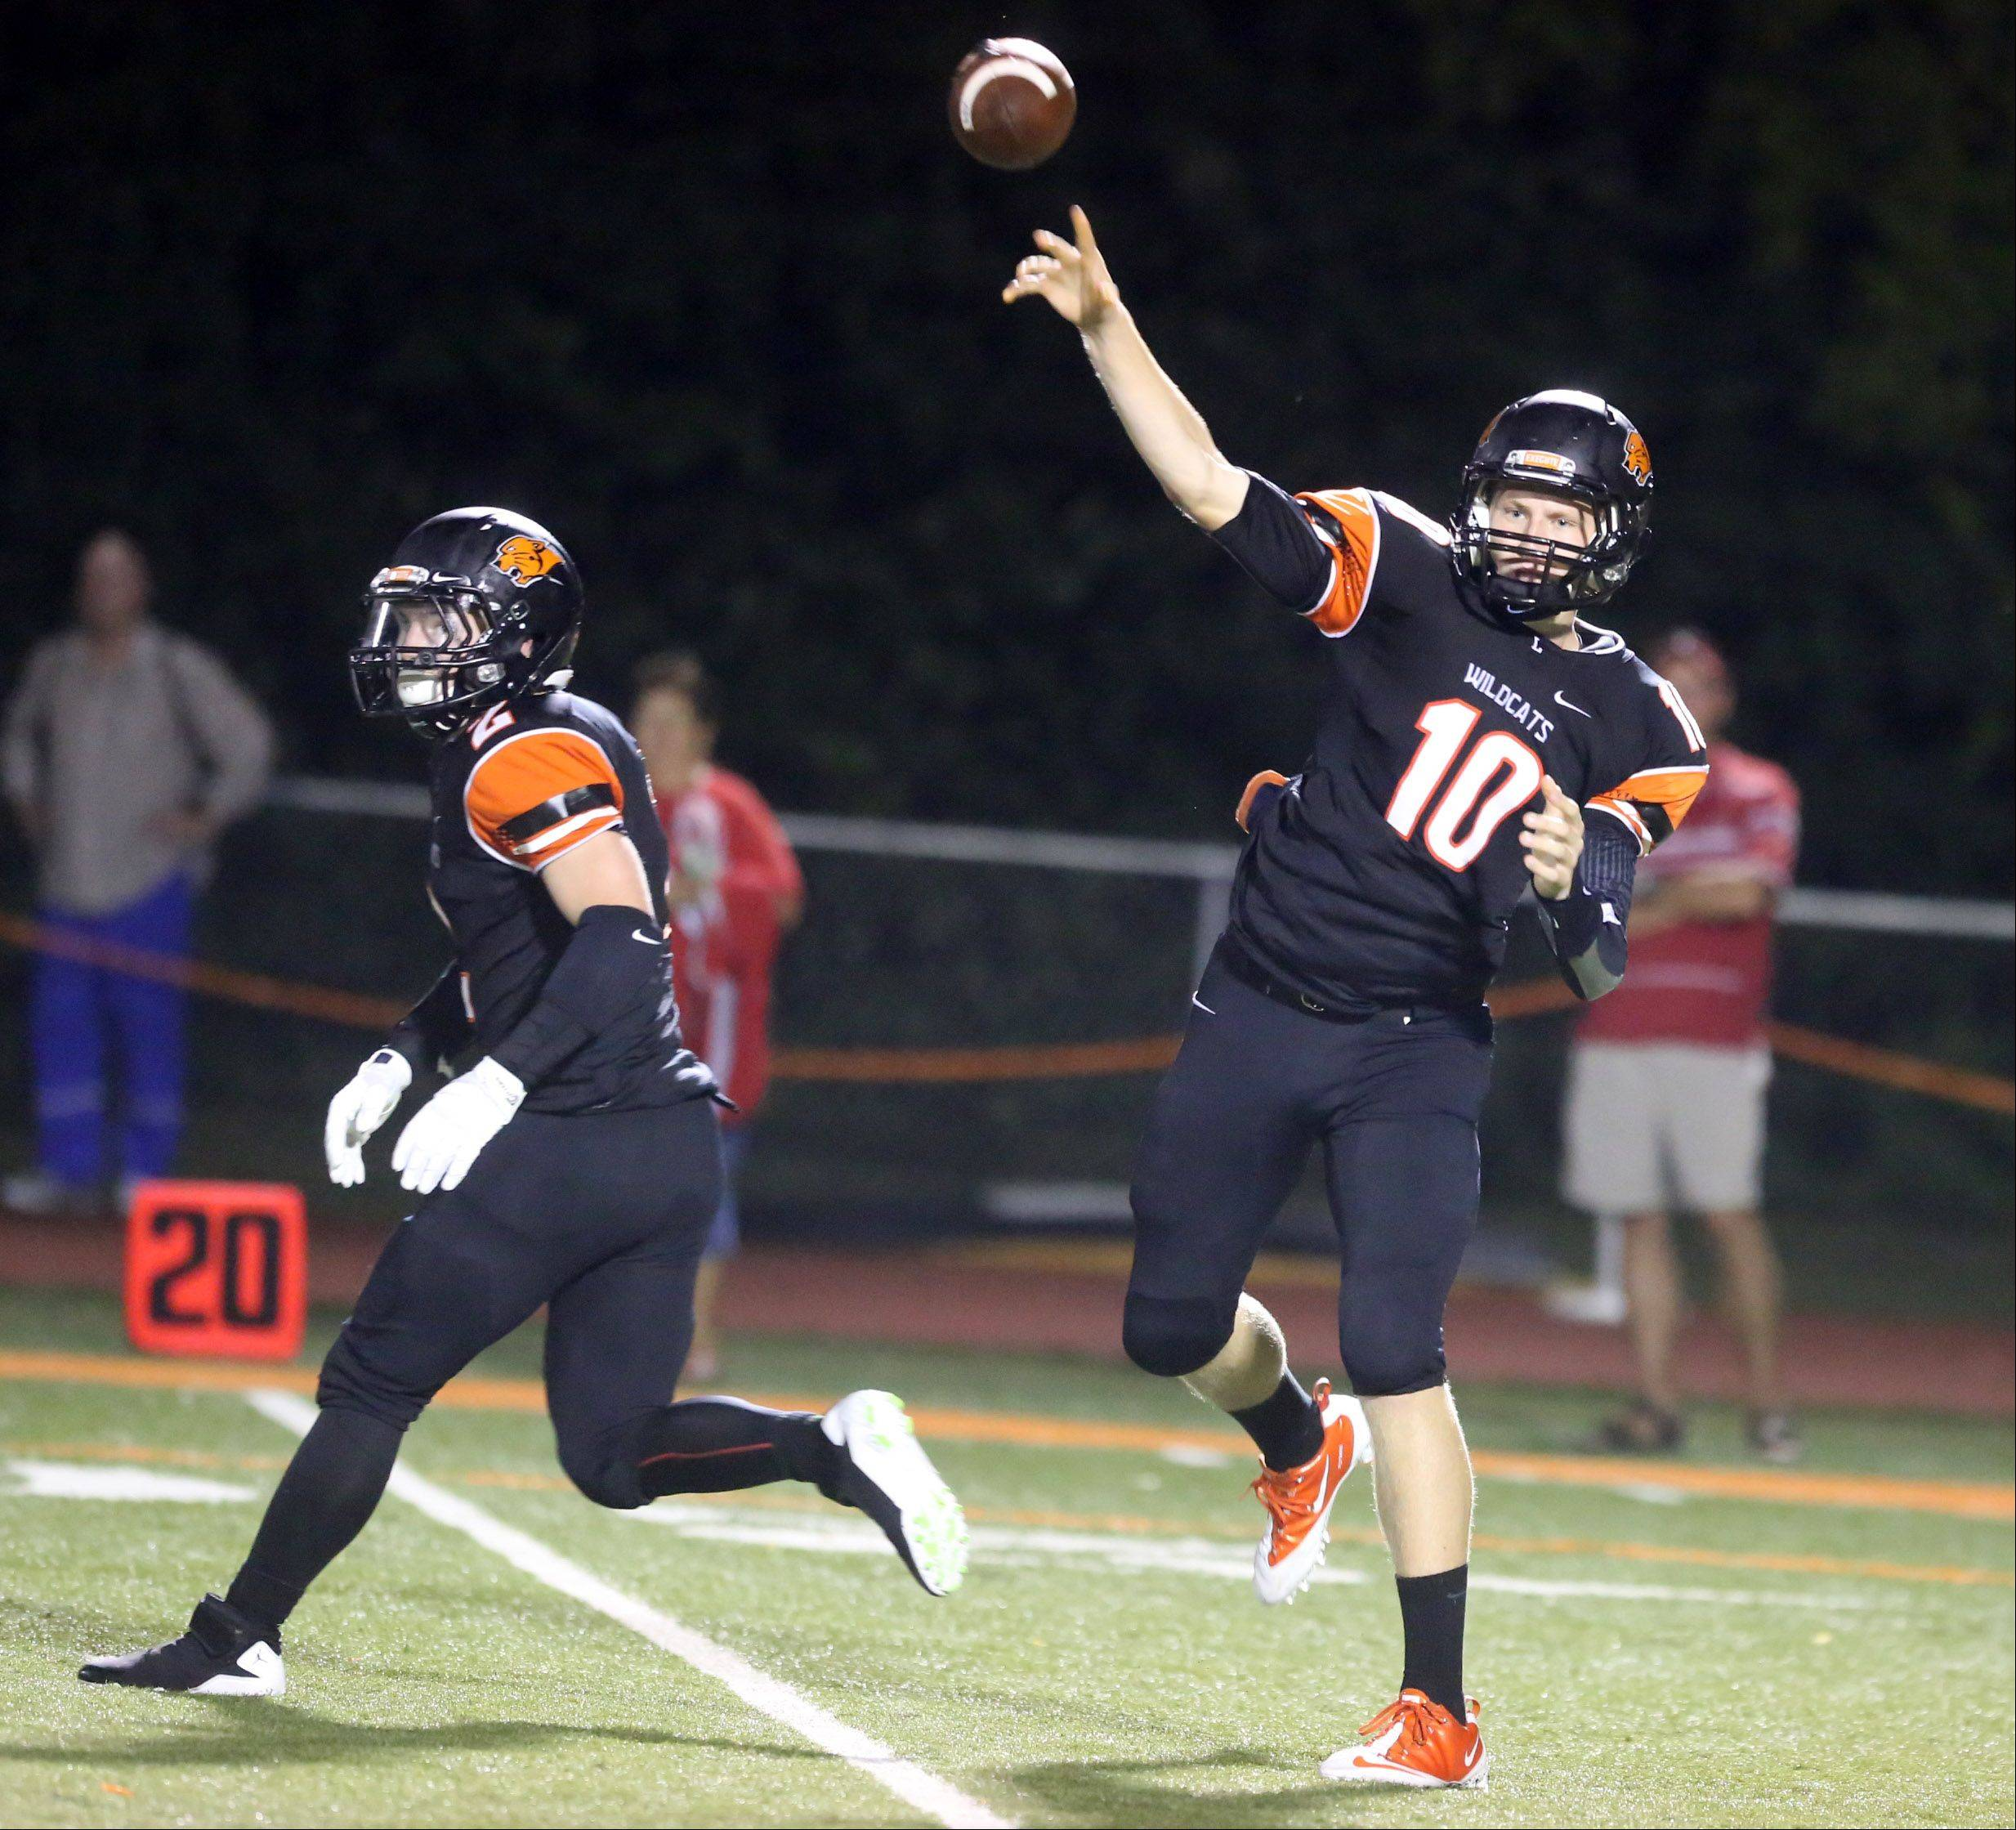 Libertyville quarterback Anthony Monken throws the ball to receiver Sean Ferraro during the first half at Libertyville on Friday.